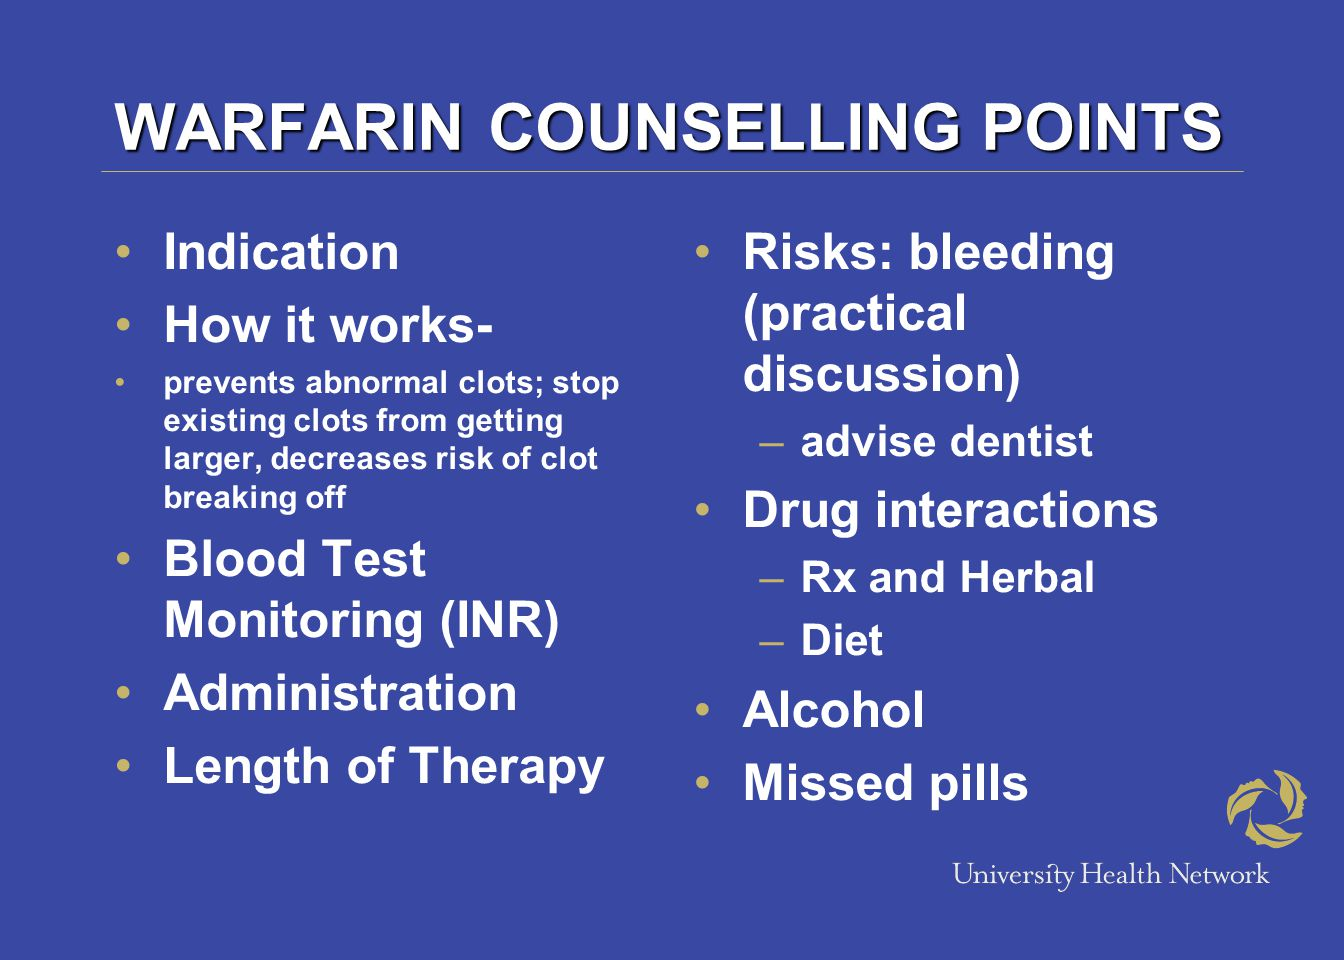 WARFARIN COUNSELLING POINTS Indication How it works- prevents abnormal clots; stop existing clots from getting larger, decreases risk of clot breaking off Blood Test Monitoring (INR) Administration Length of Therapy Risks: bleeding (practical discussion) –advise dentist Drug interactions –Rx and Herbal –Diet Alcohol Missed pills